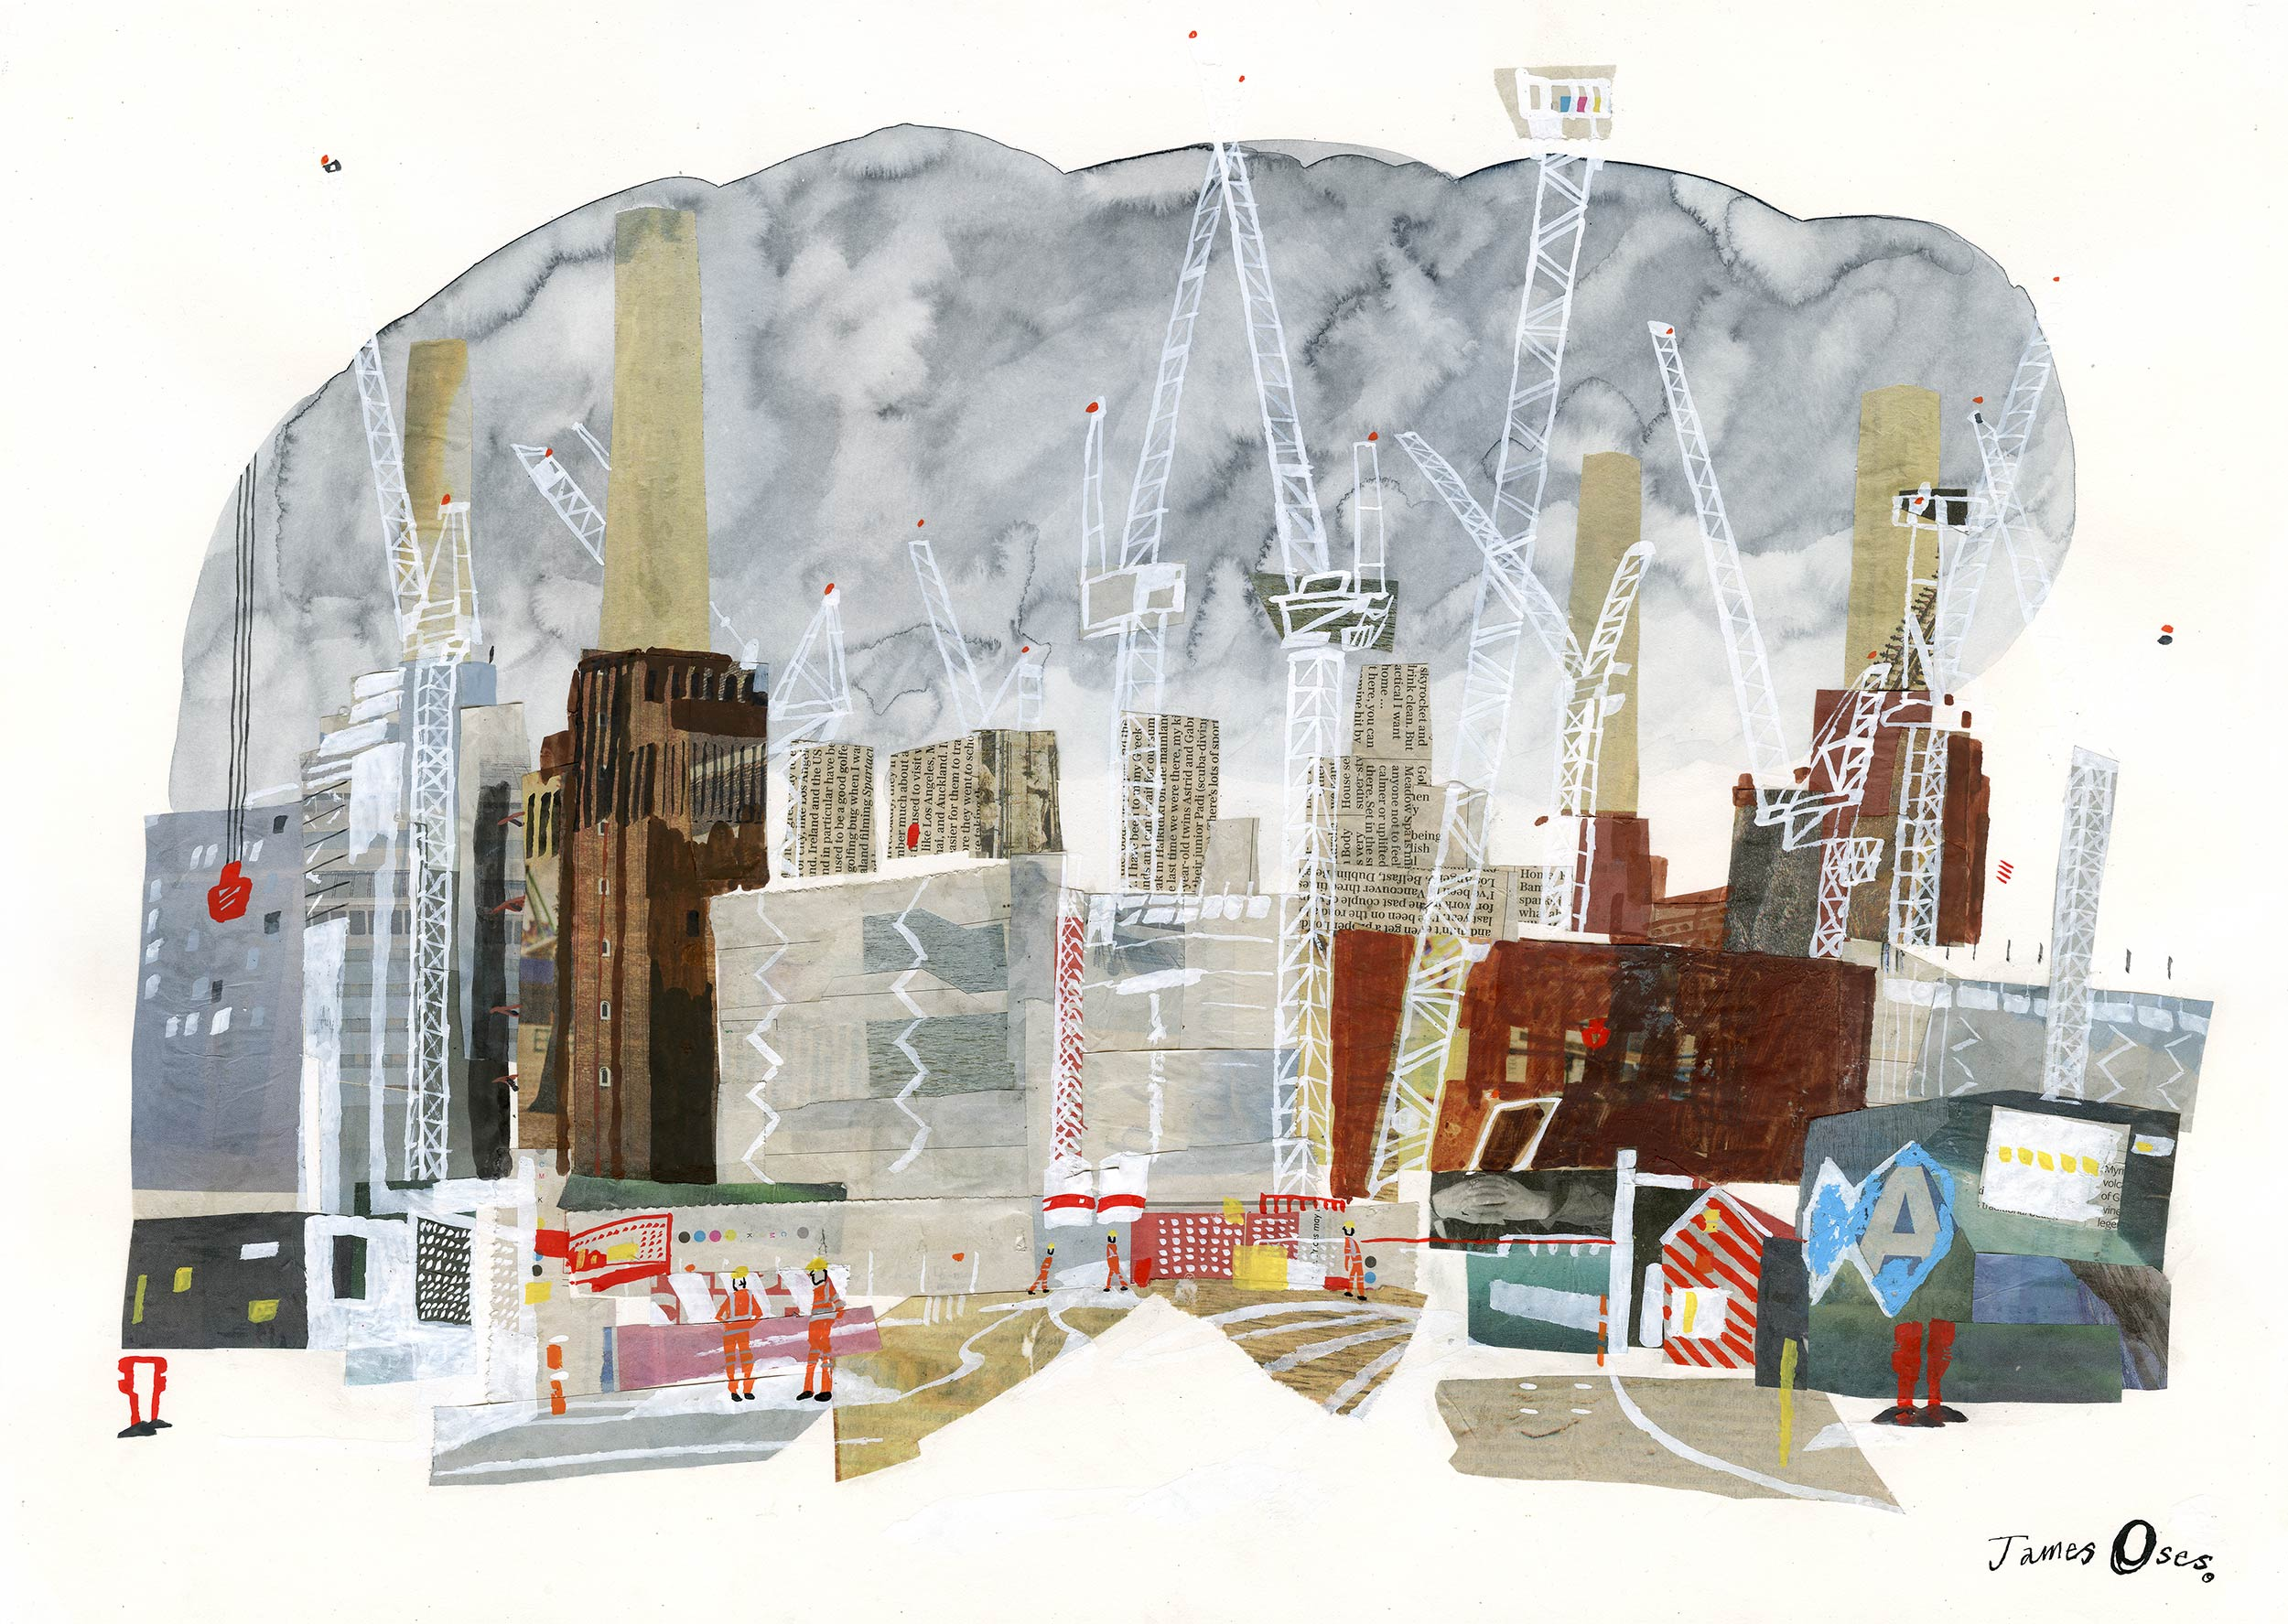 Battersea Power Station by James Oses, image 1